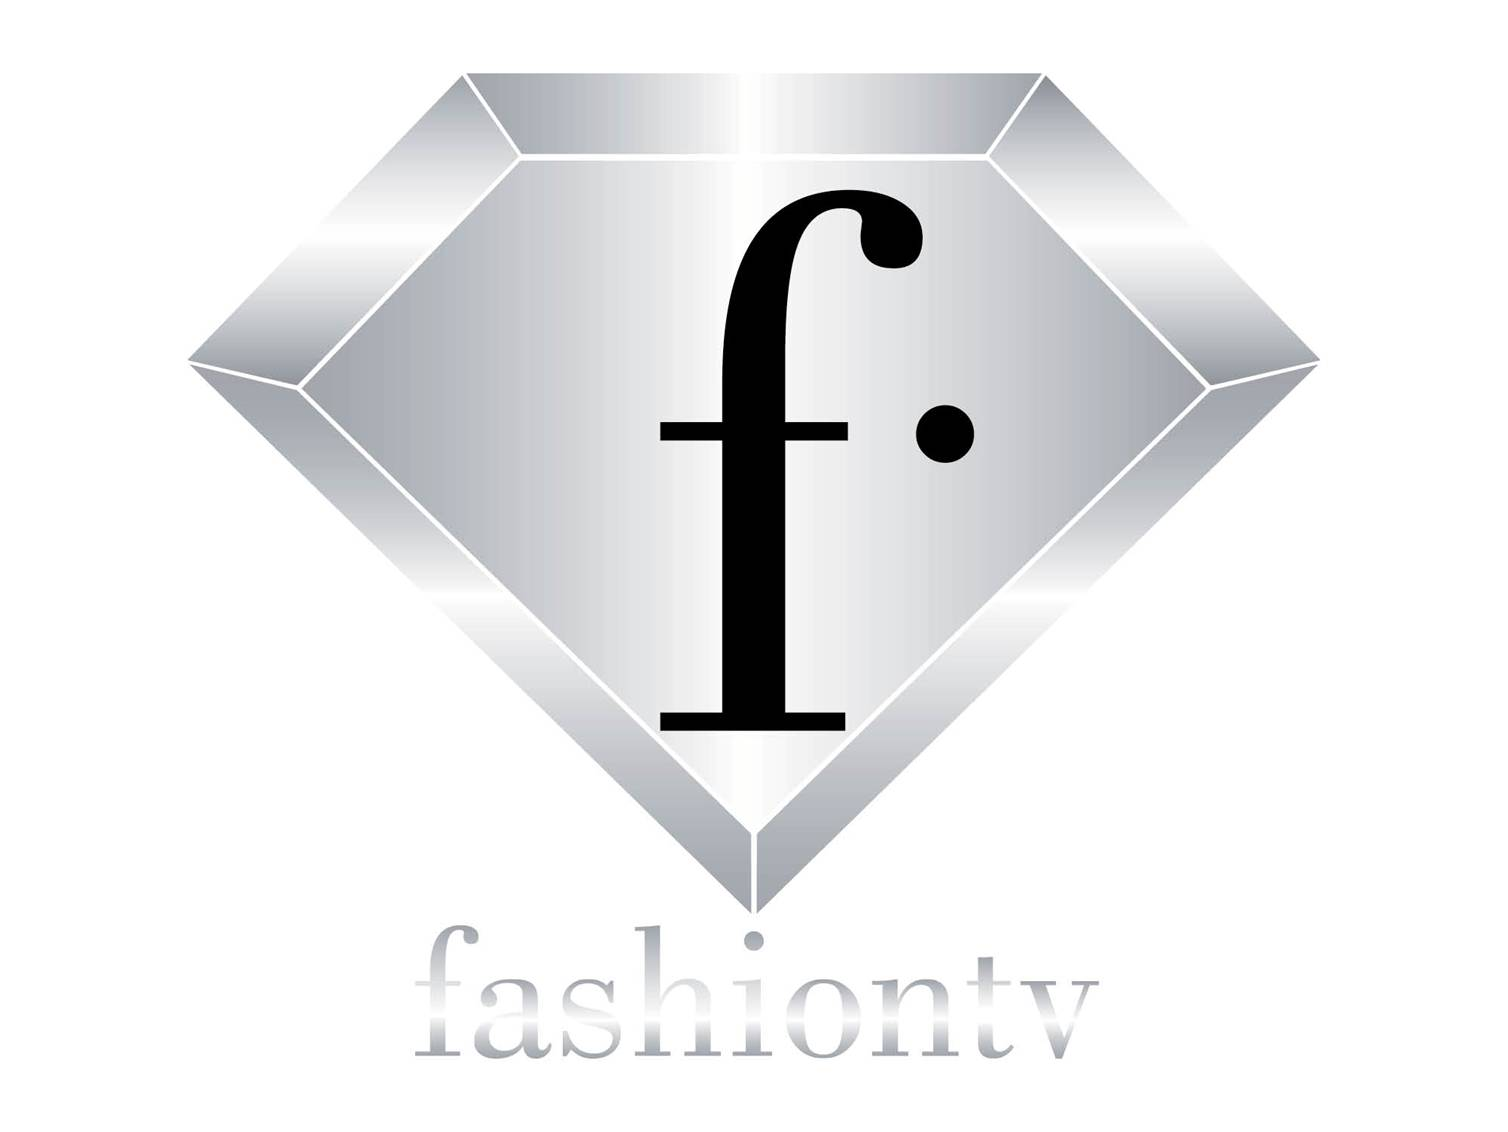 Fashion.tv